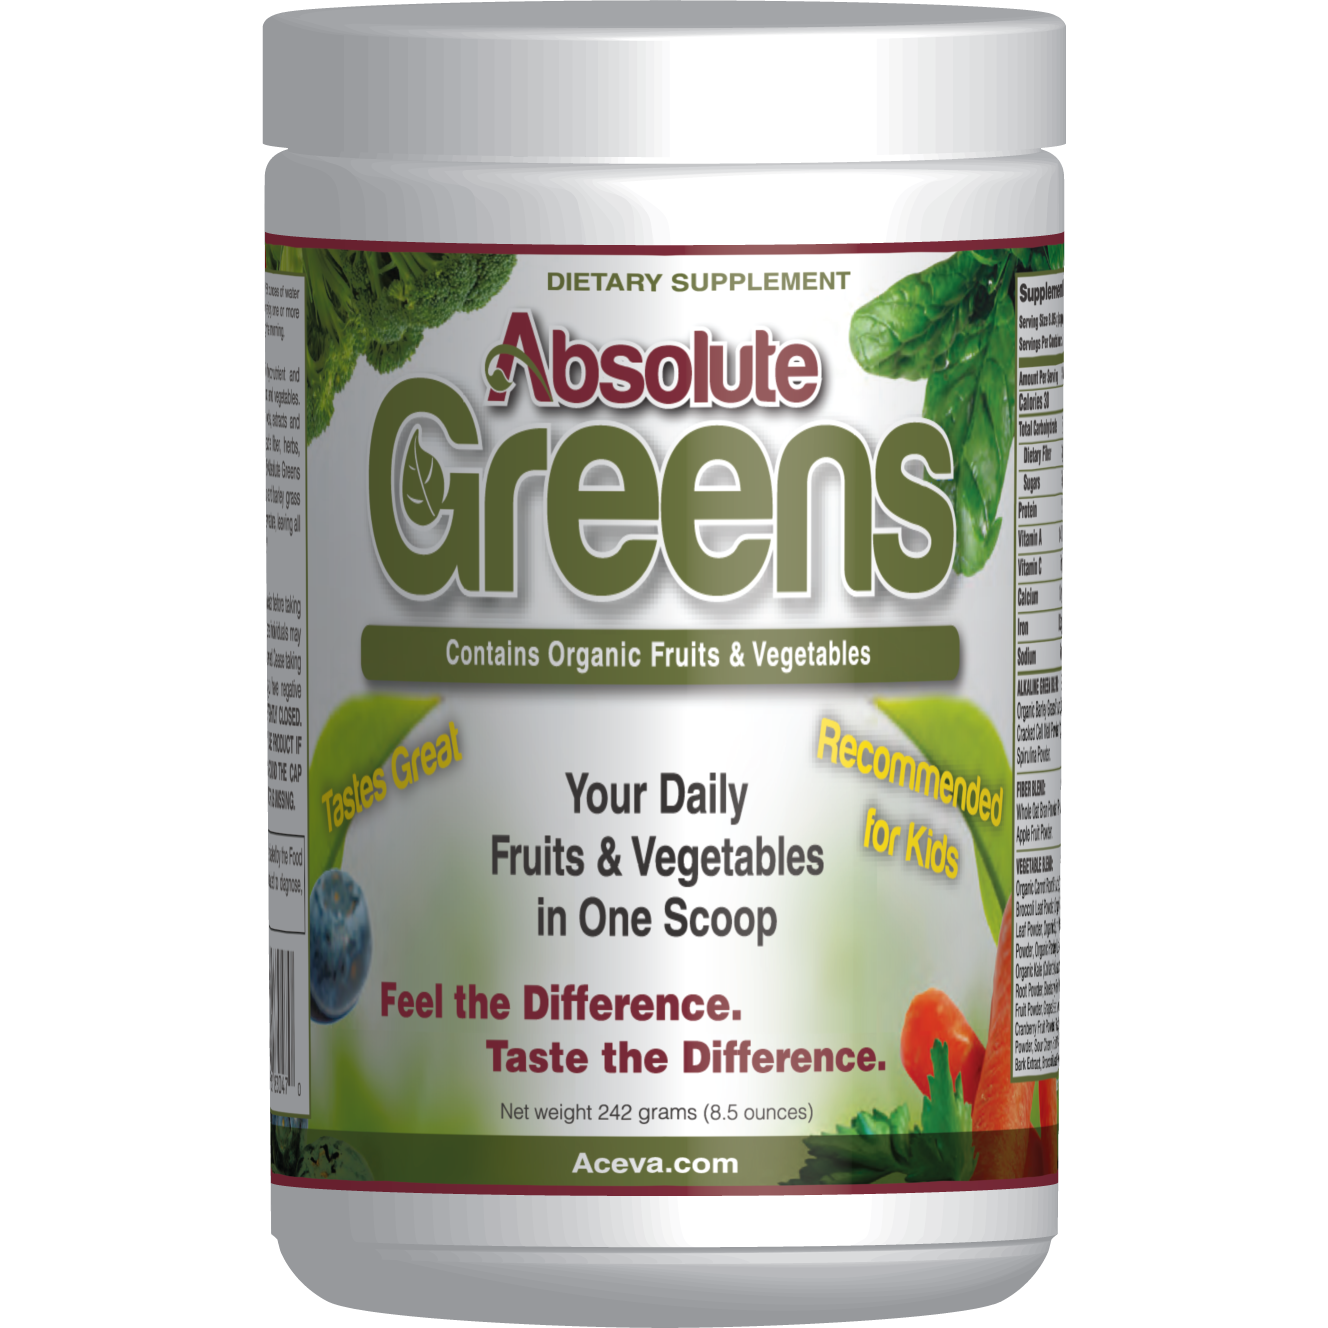 17 green ways for St. Patrick's Day | absolute greens powder supplement | Eat. Drink. Work. Play.